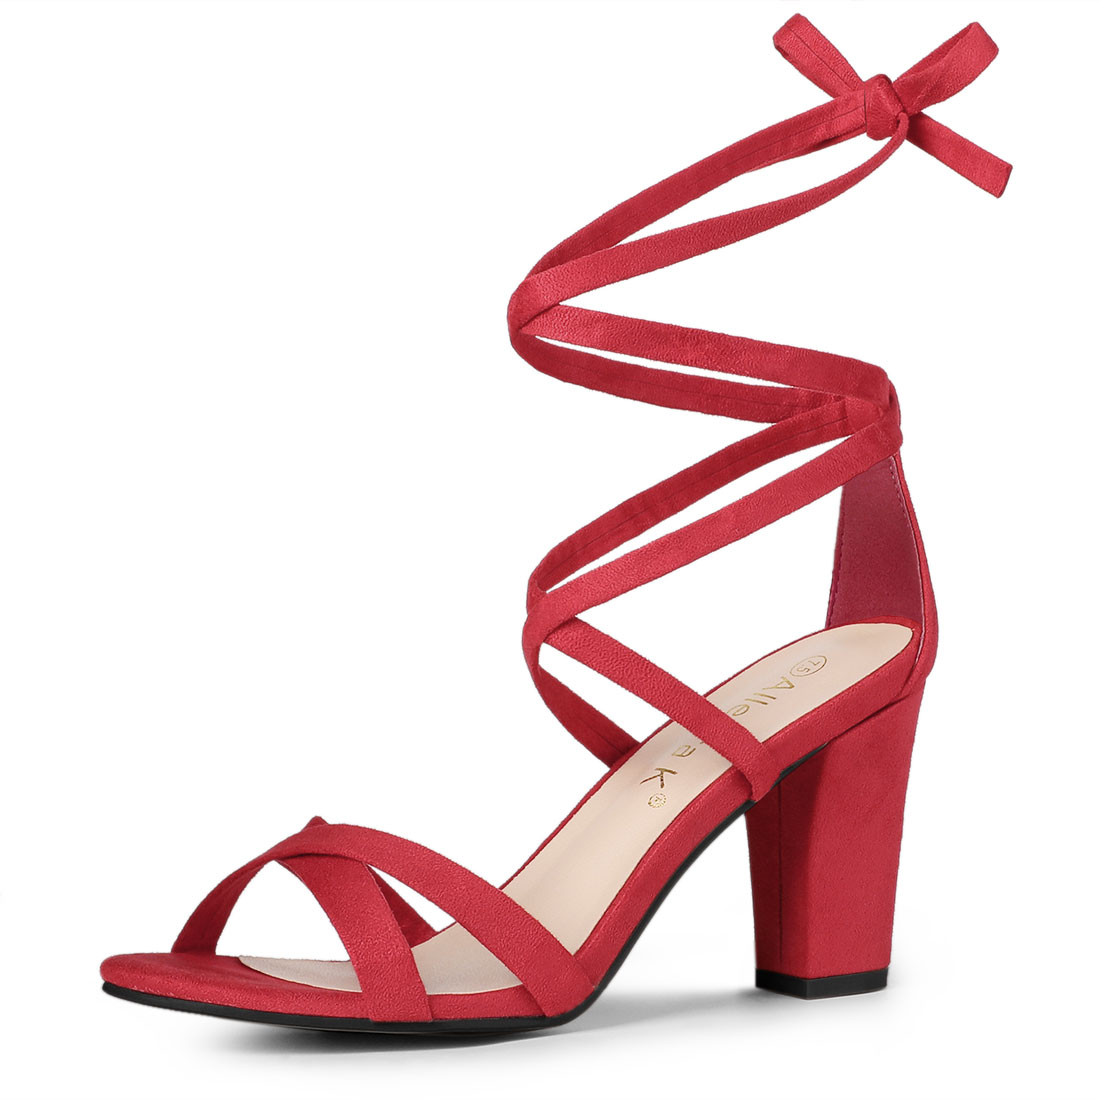 Allegra K Women's Lace-up Heeled Sandals Red 1 US 9